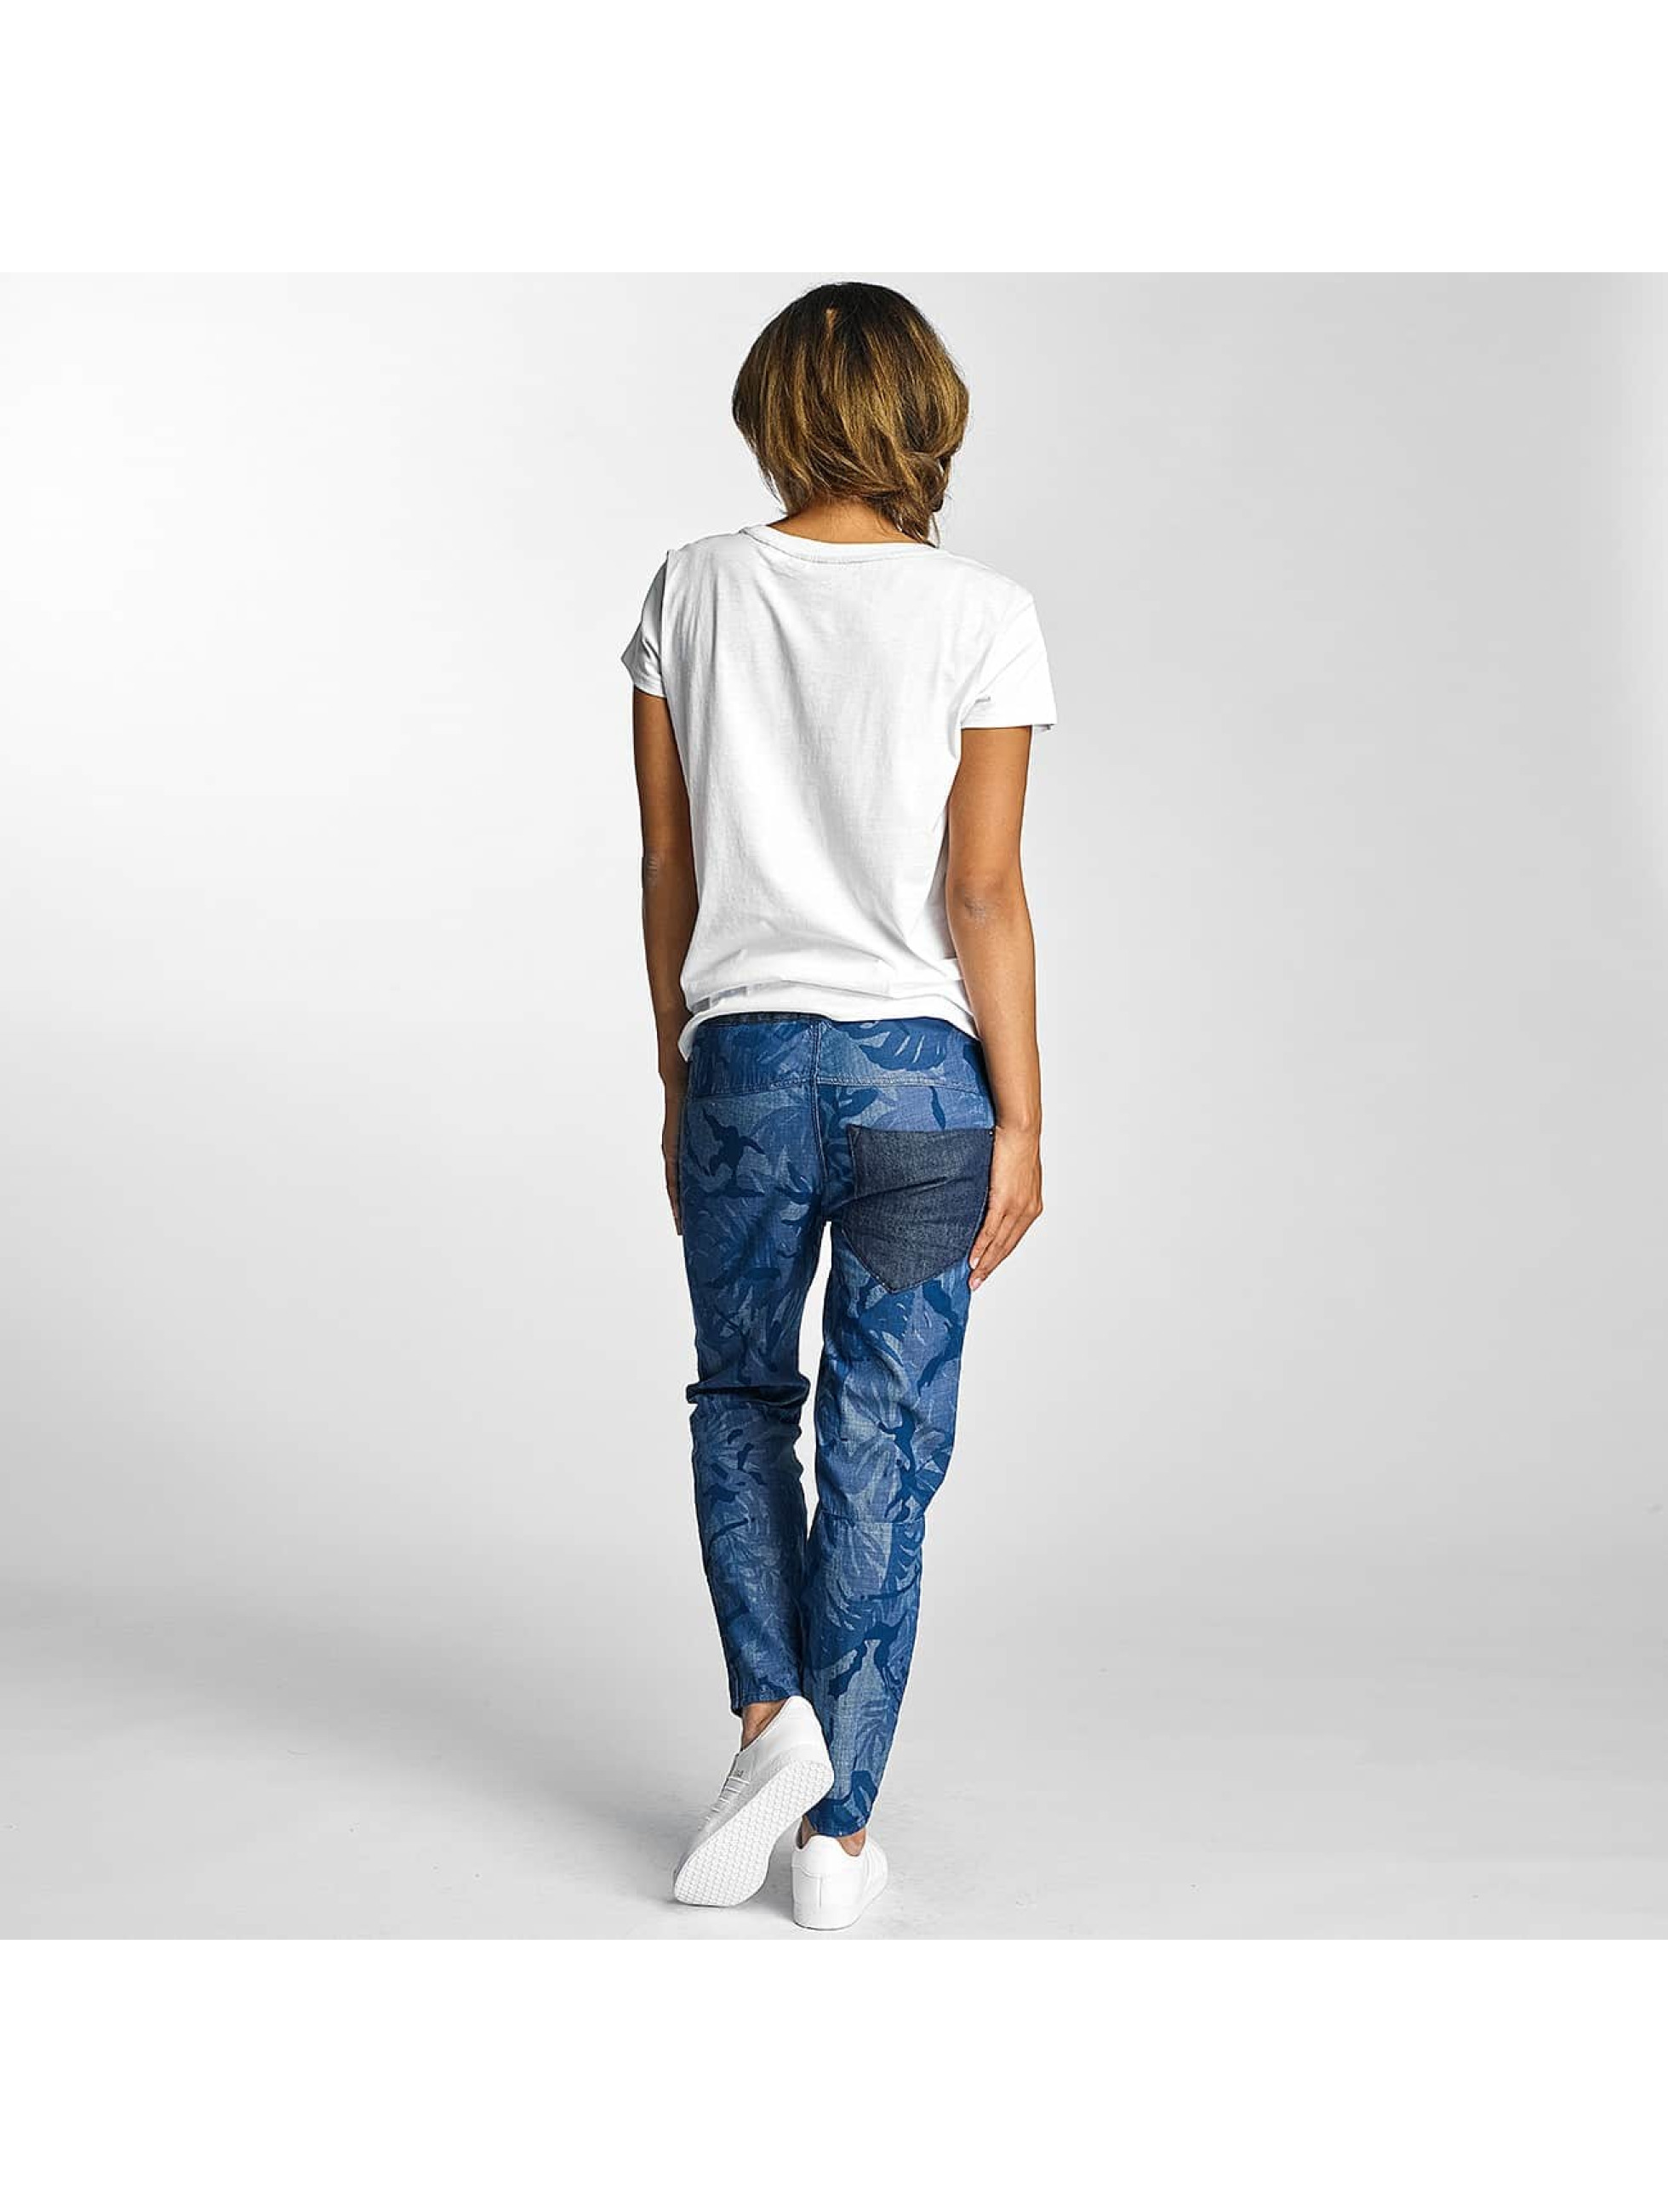 G-Star Boyfriend Jeans Army BTN Sport Light WT Boll Denim HW AO blue